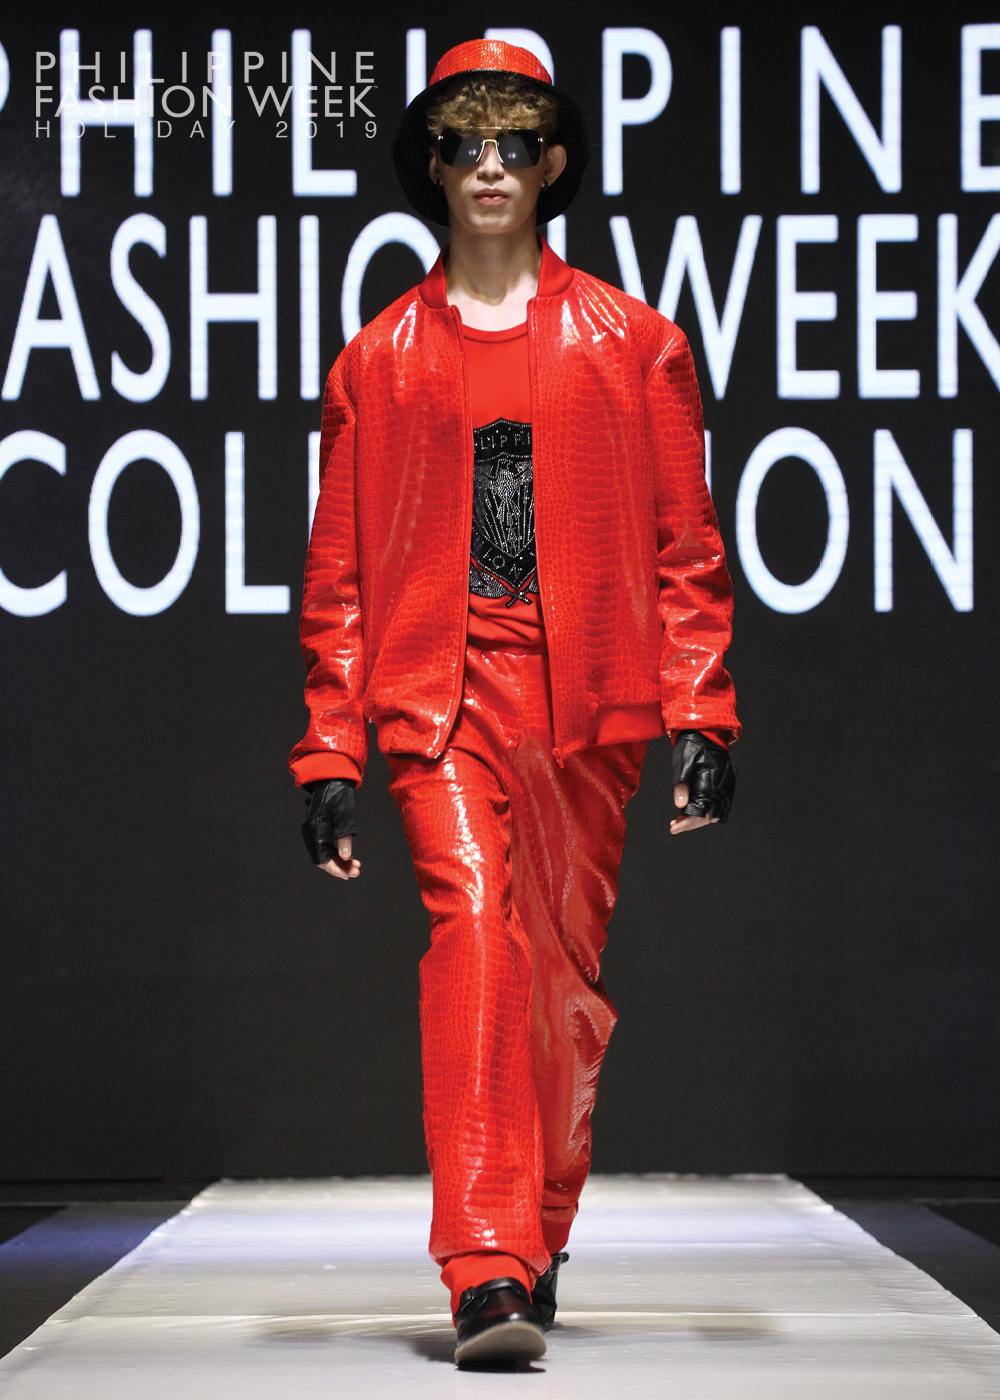 PhFW_collection show15.jpg